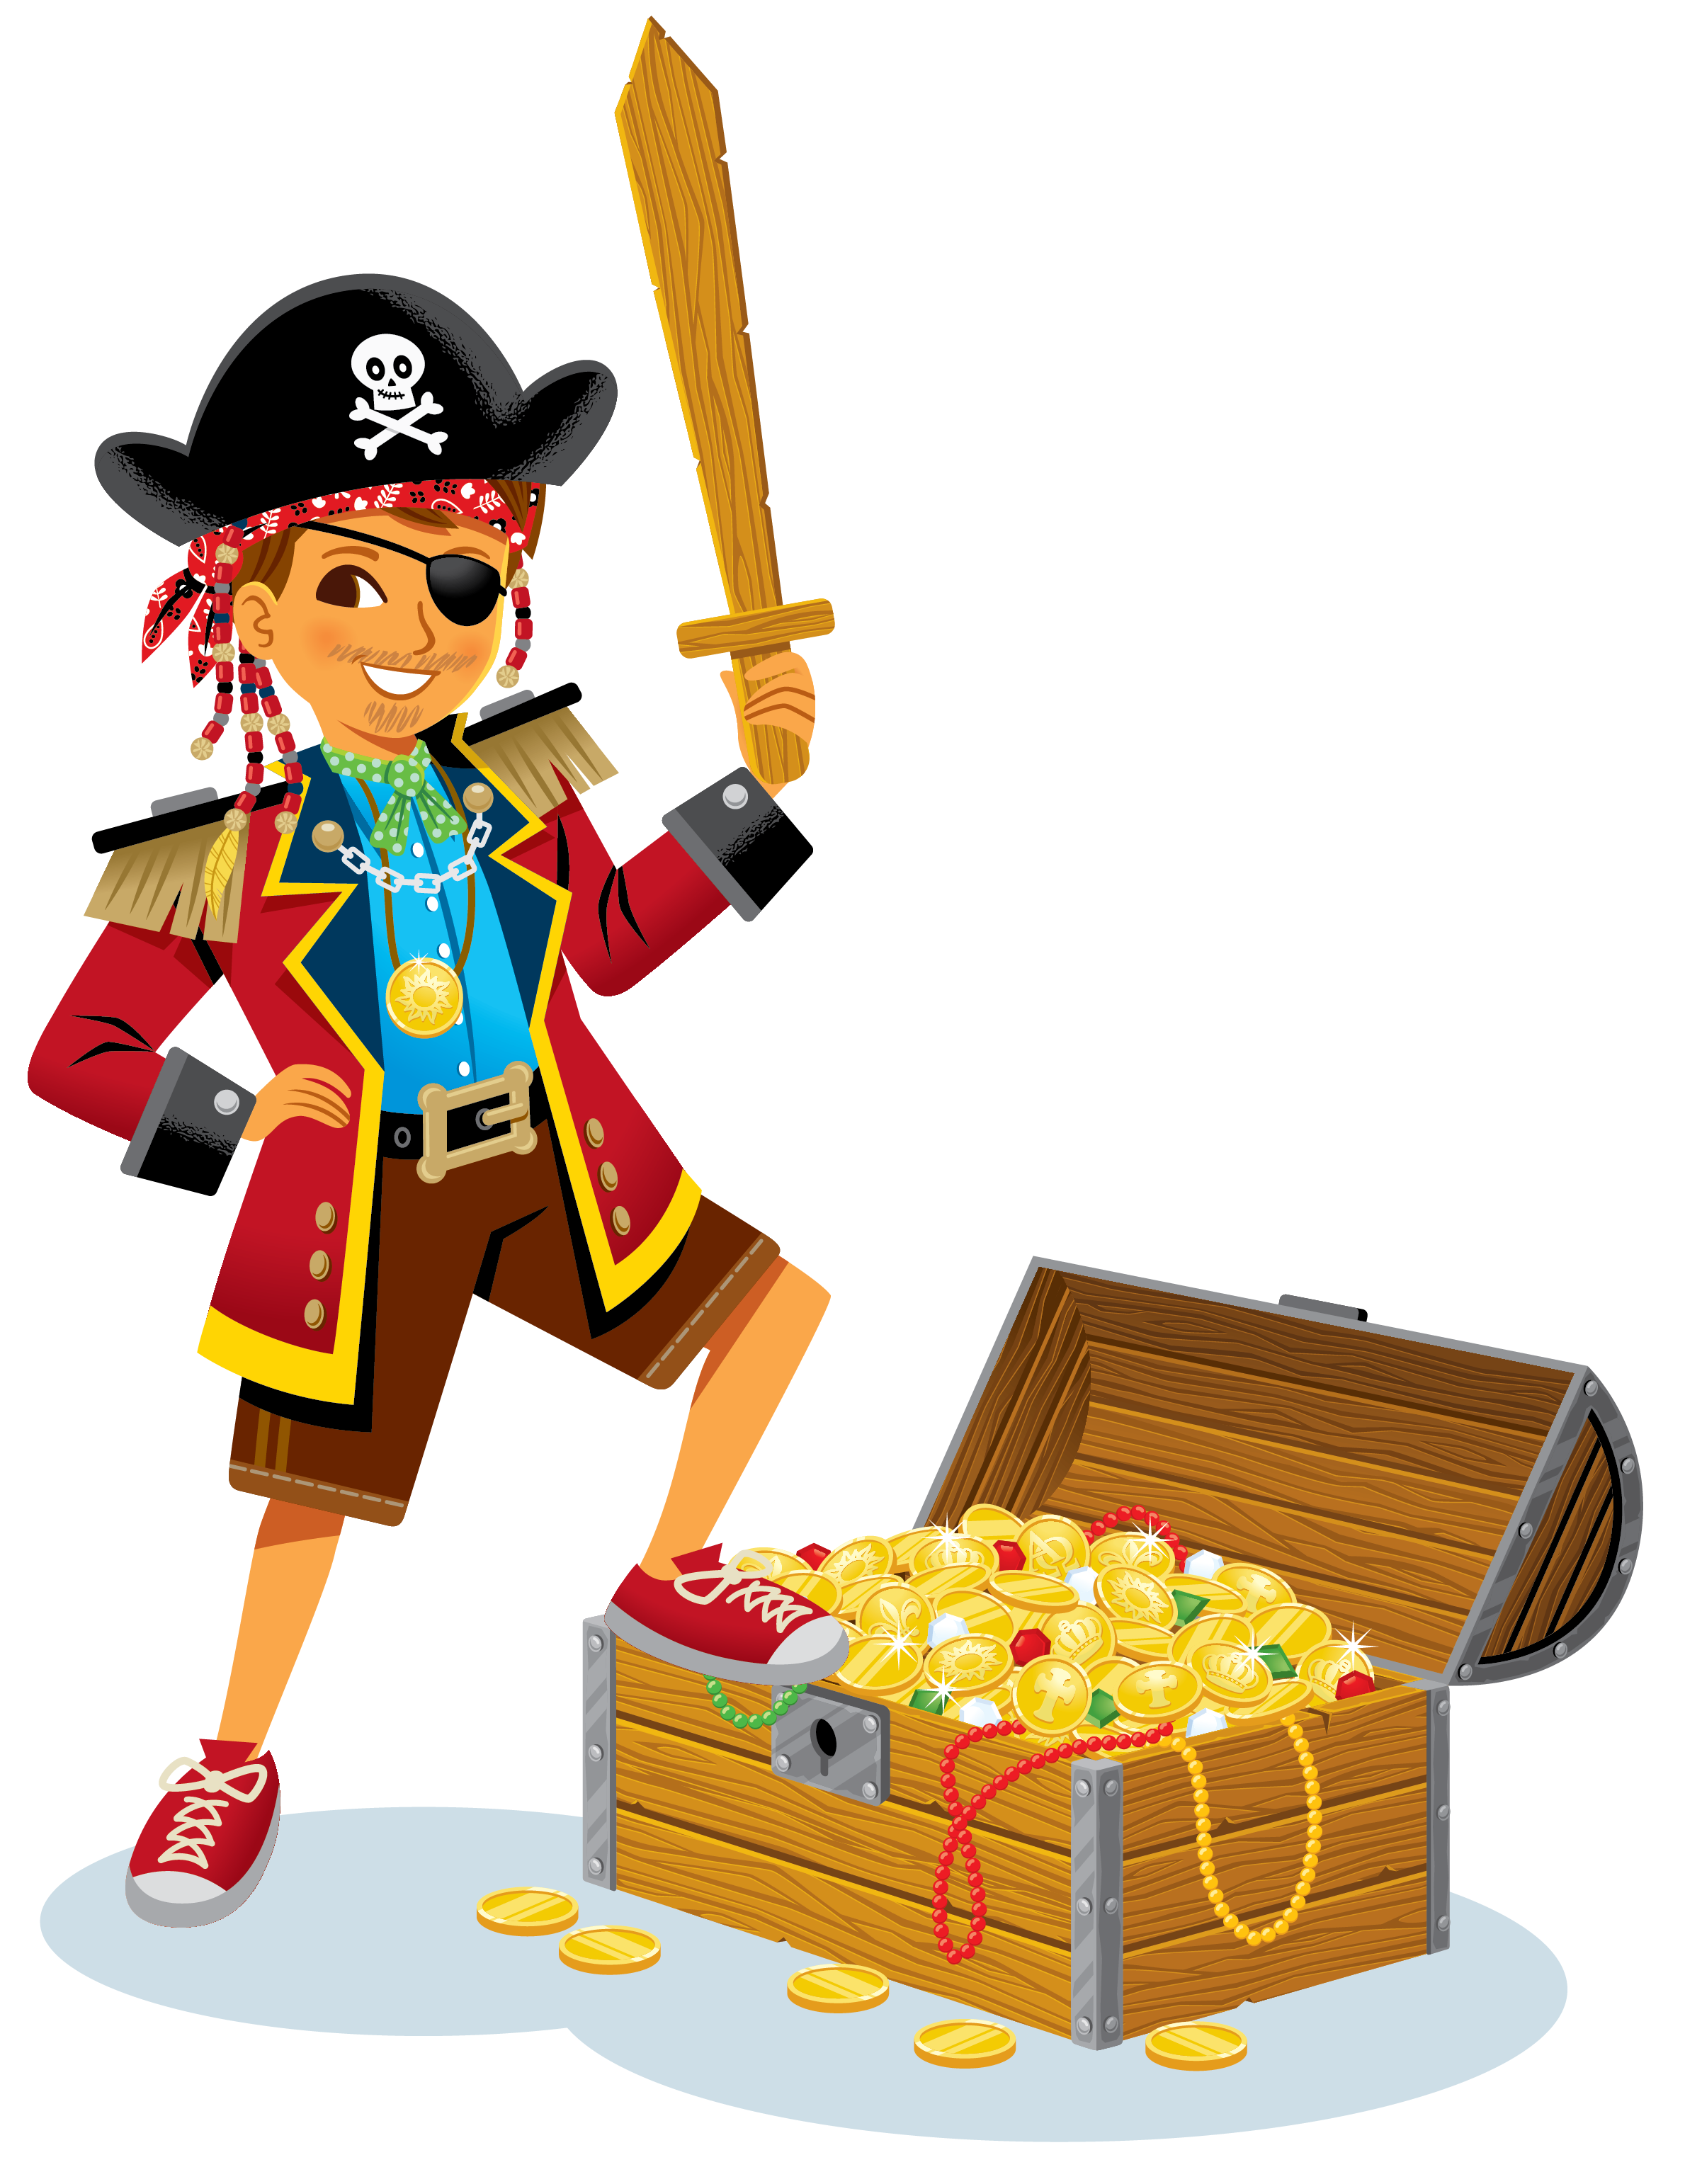 Pirate Costume with Treasure Chest